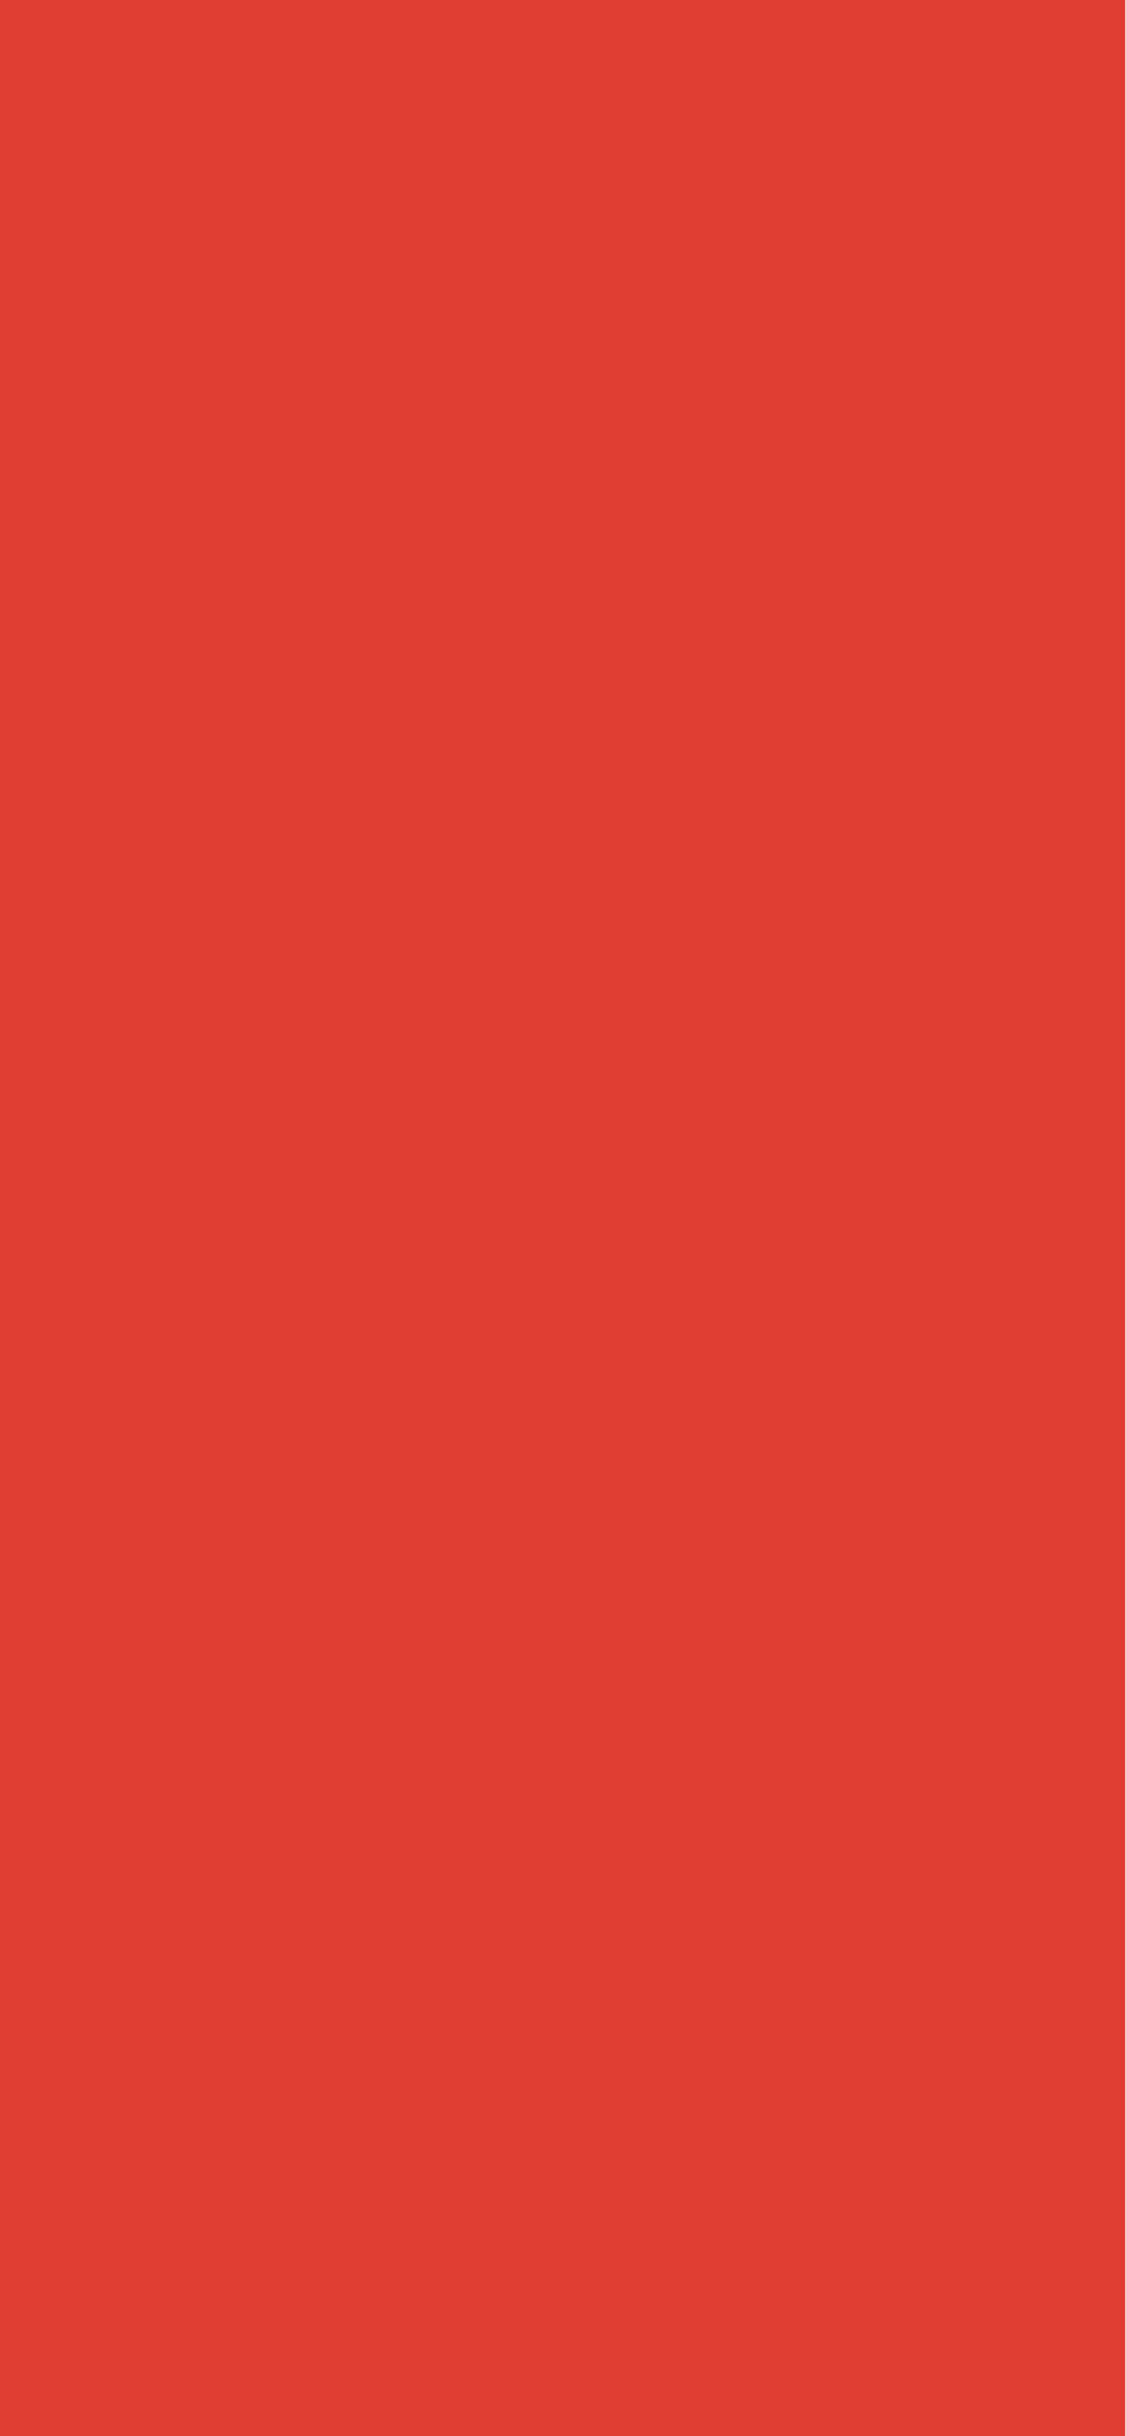 1125x2436 CG Red Solid Color Background